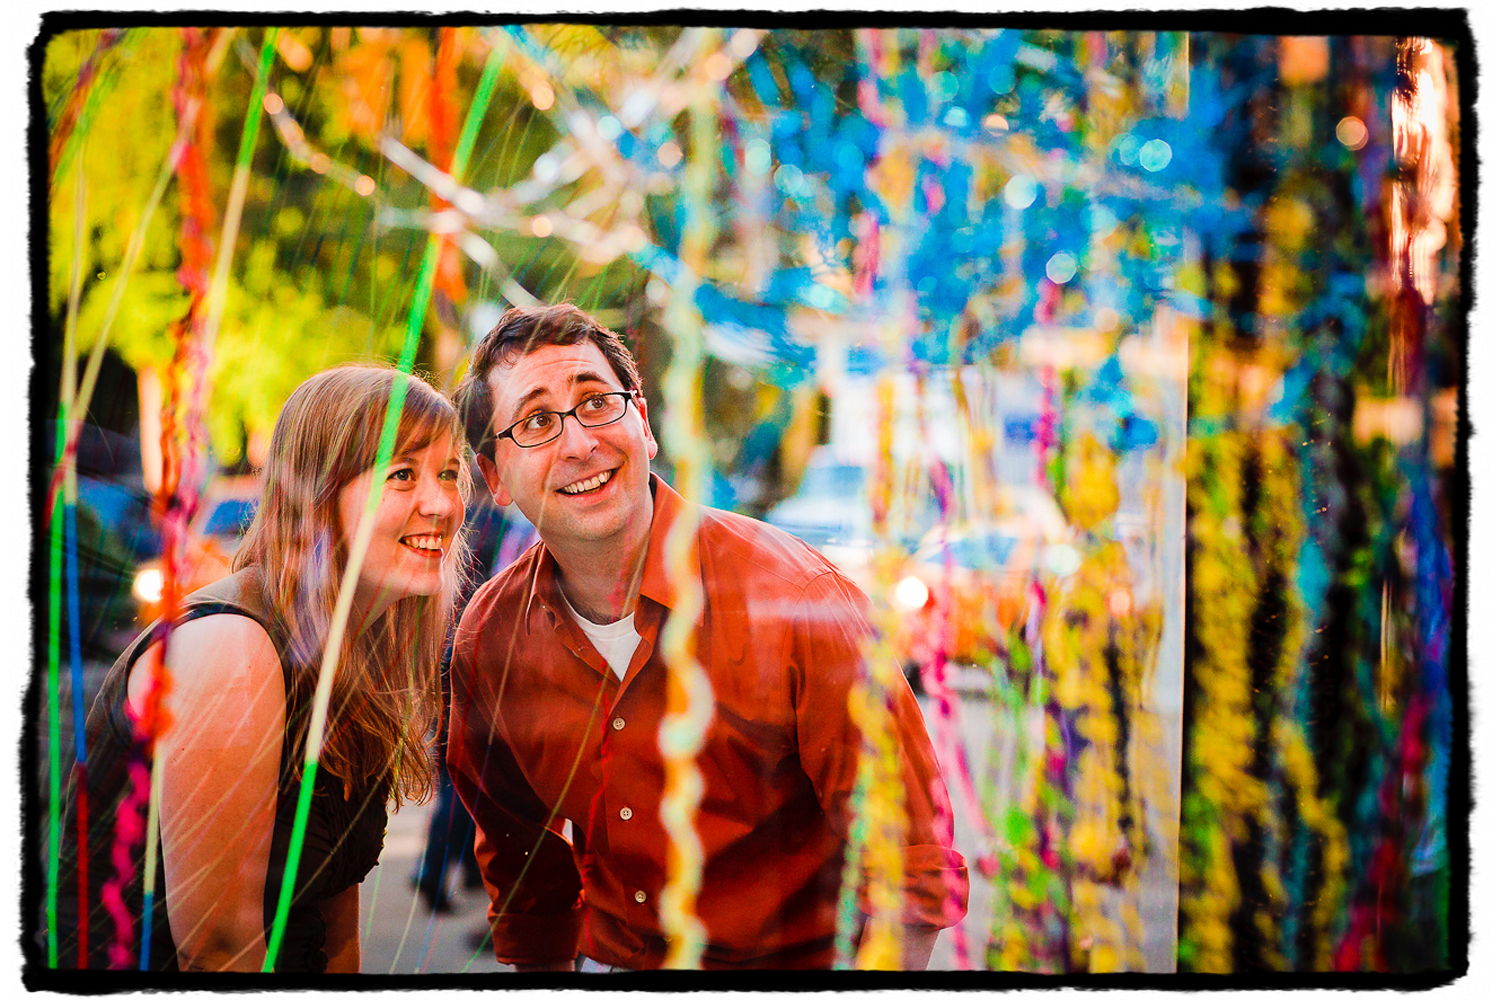 Engagement Portraits: Katie & Jason check out the art installation in the Flatiron Building.